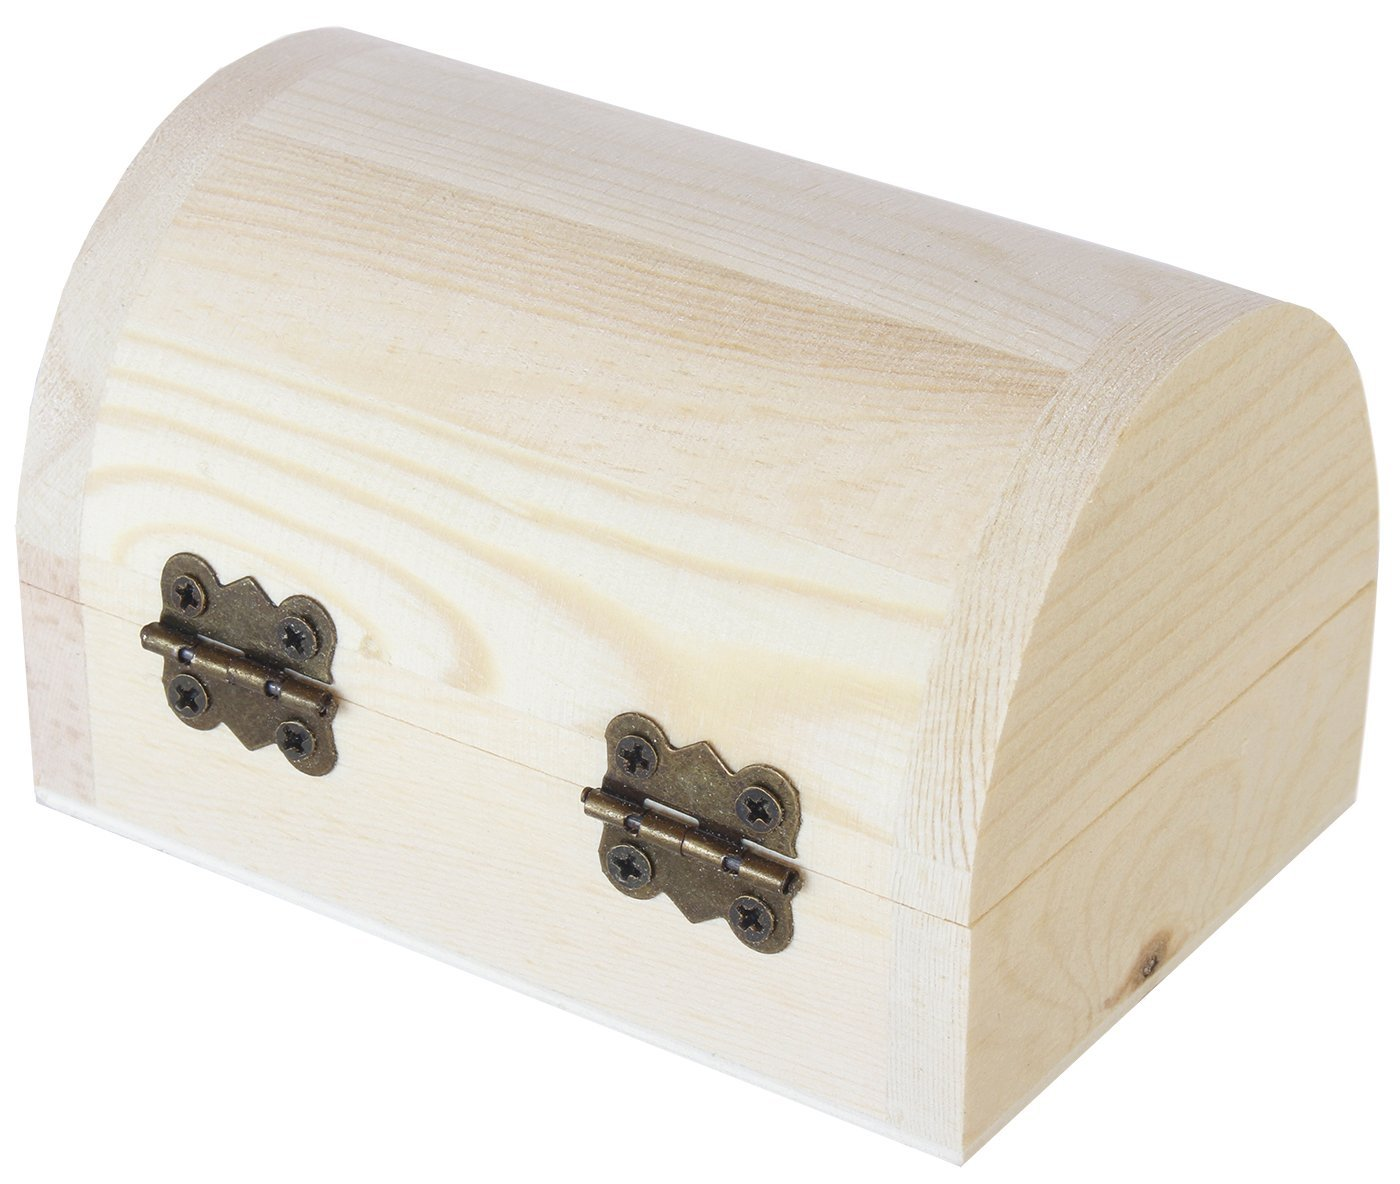 Juvale Unfinished Wood Treasure Chest - 6-Pack Wooden Treasure Boxes Locking Clasp DIY Projects, Home Decor, Props, 2.76 x 3.9 x 2.36 inches by Juvale (Image #2)